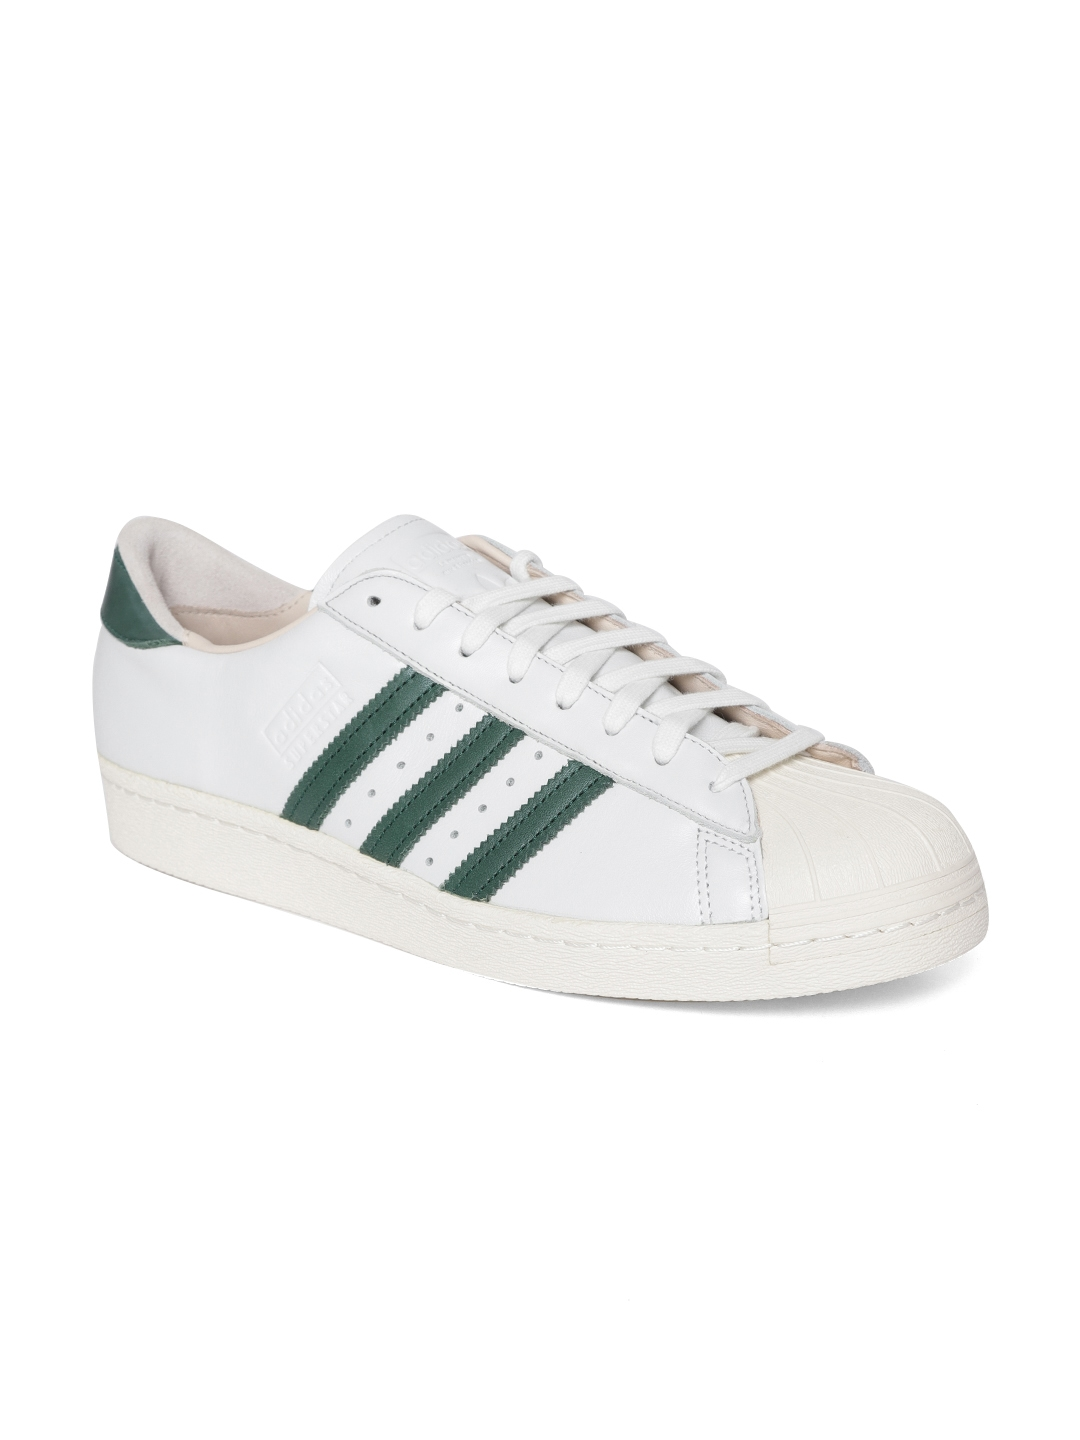 3ff5b6b605ad Buy ADIDAS Originals Men White Superstar 80S RECON Leather Sneakers ...